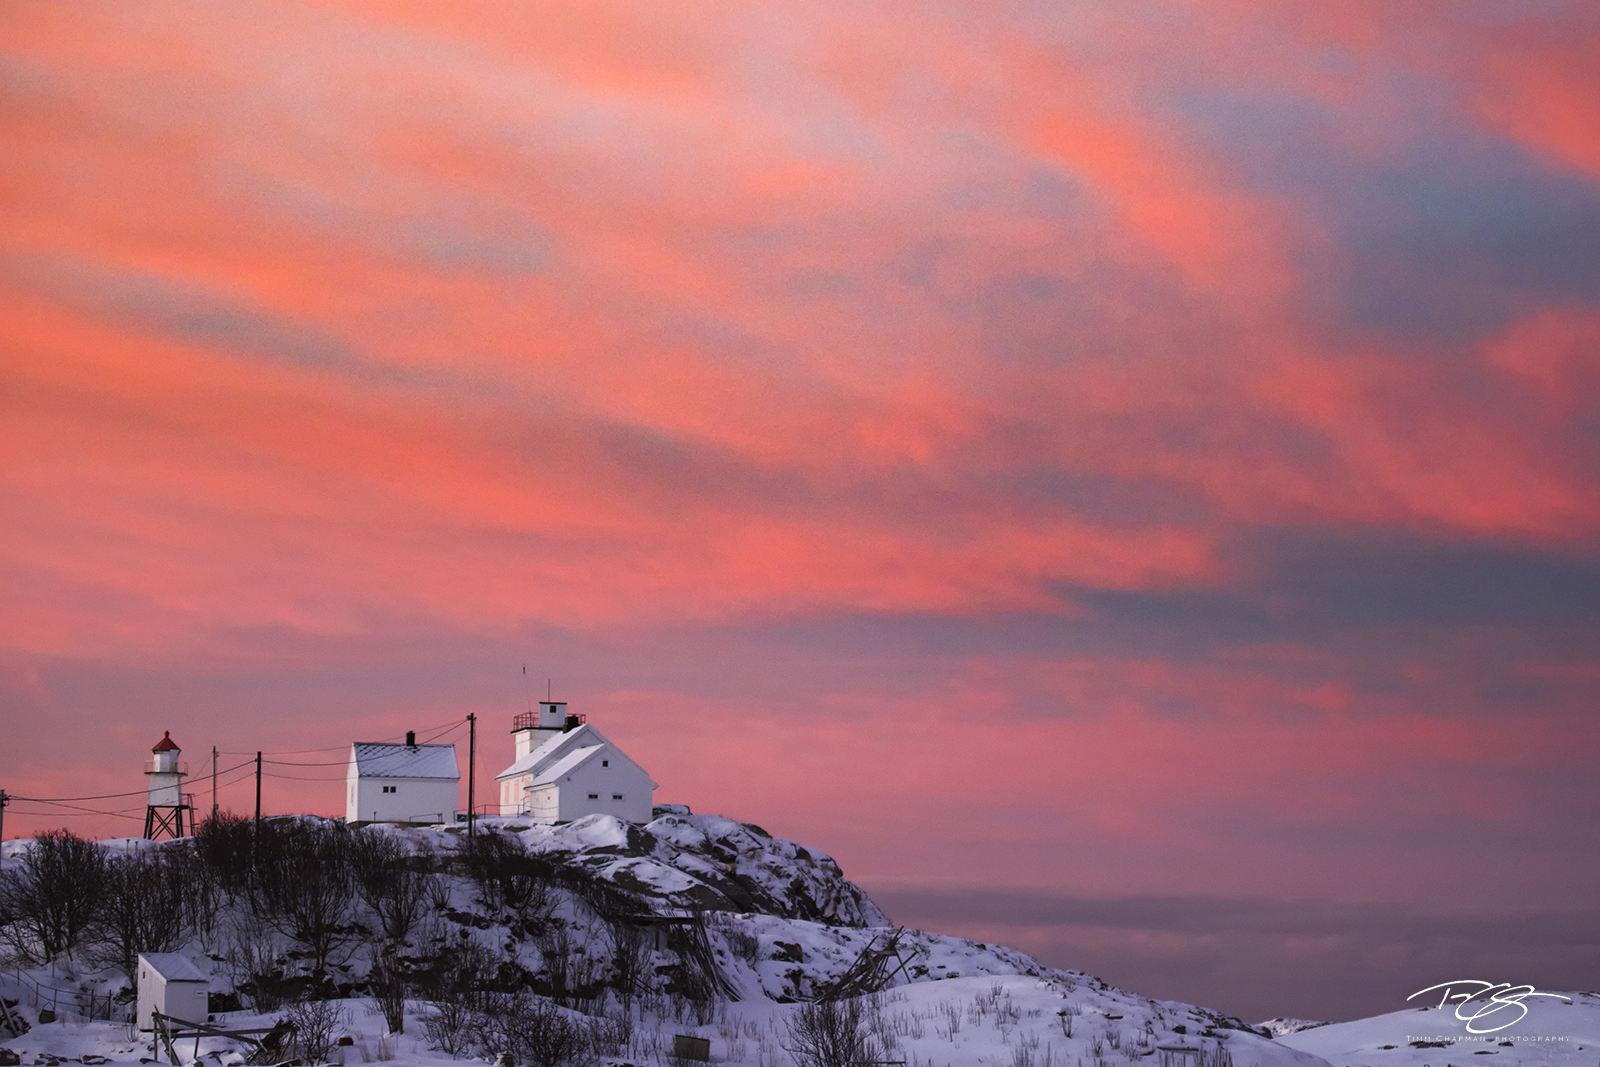 norway, gallery, lofoten, Henningsvær, snowy, fresh snow, henningsvaer, winter, sunrise, predawn, fiery sky, clouds, dawn, lighthouse, Austvågøy, Austvågøya, light, lighthouse, photo